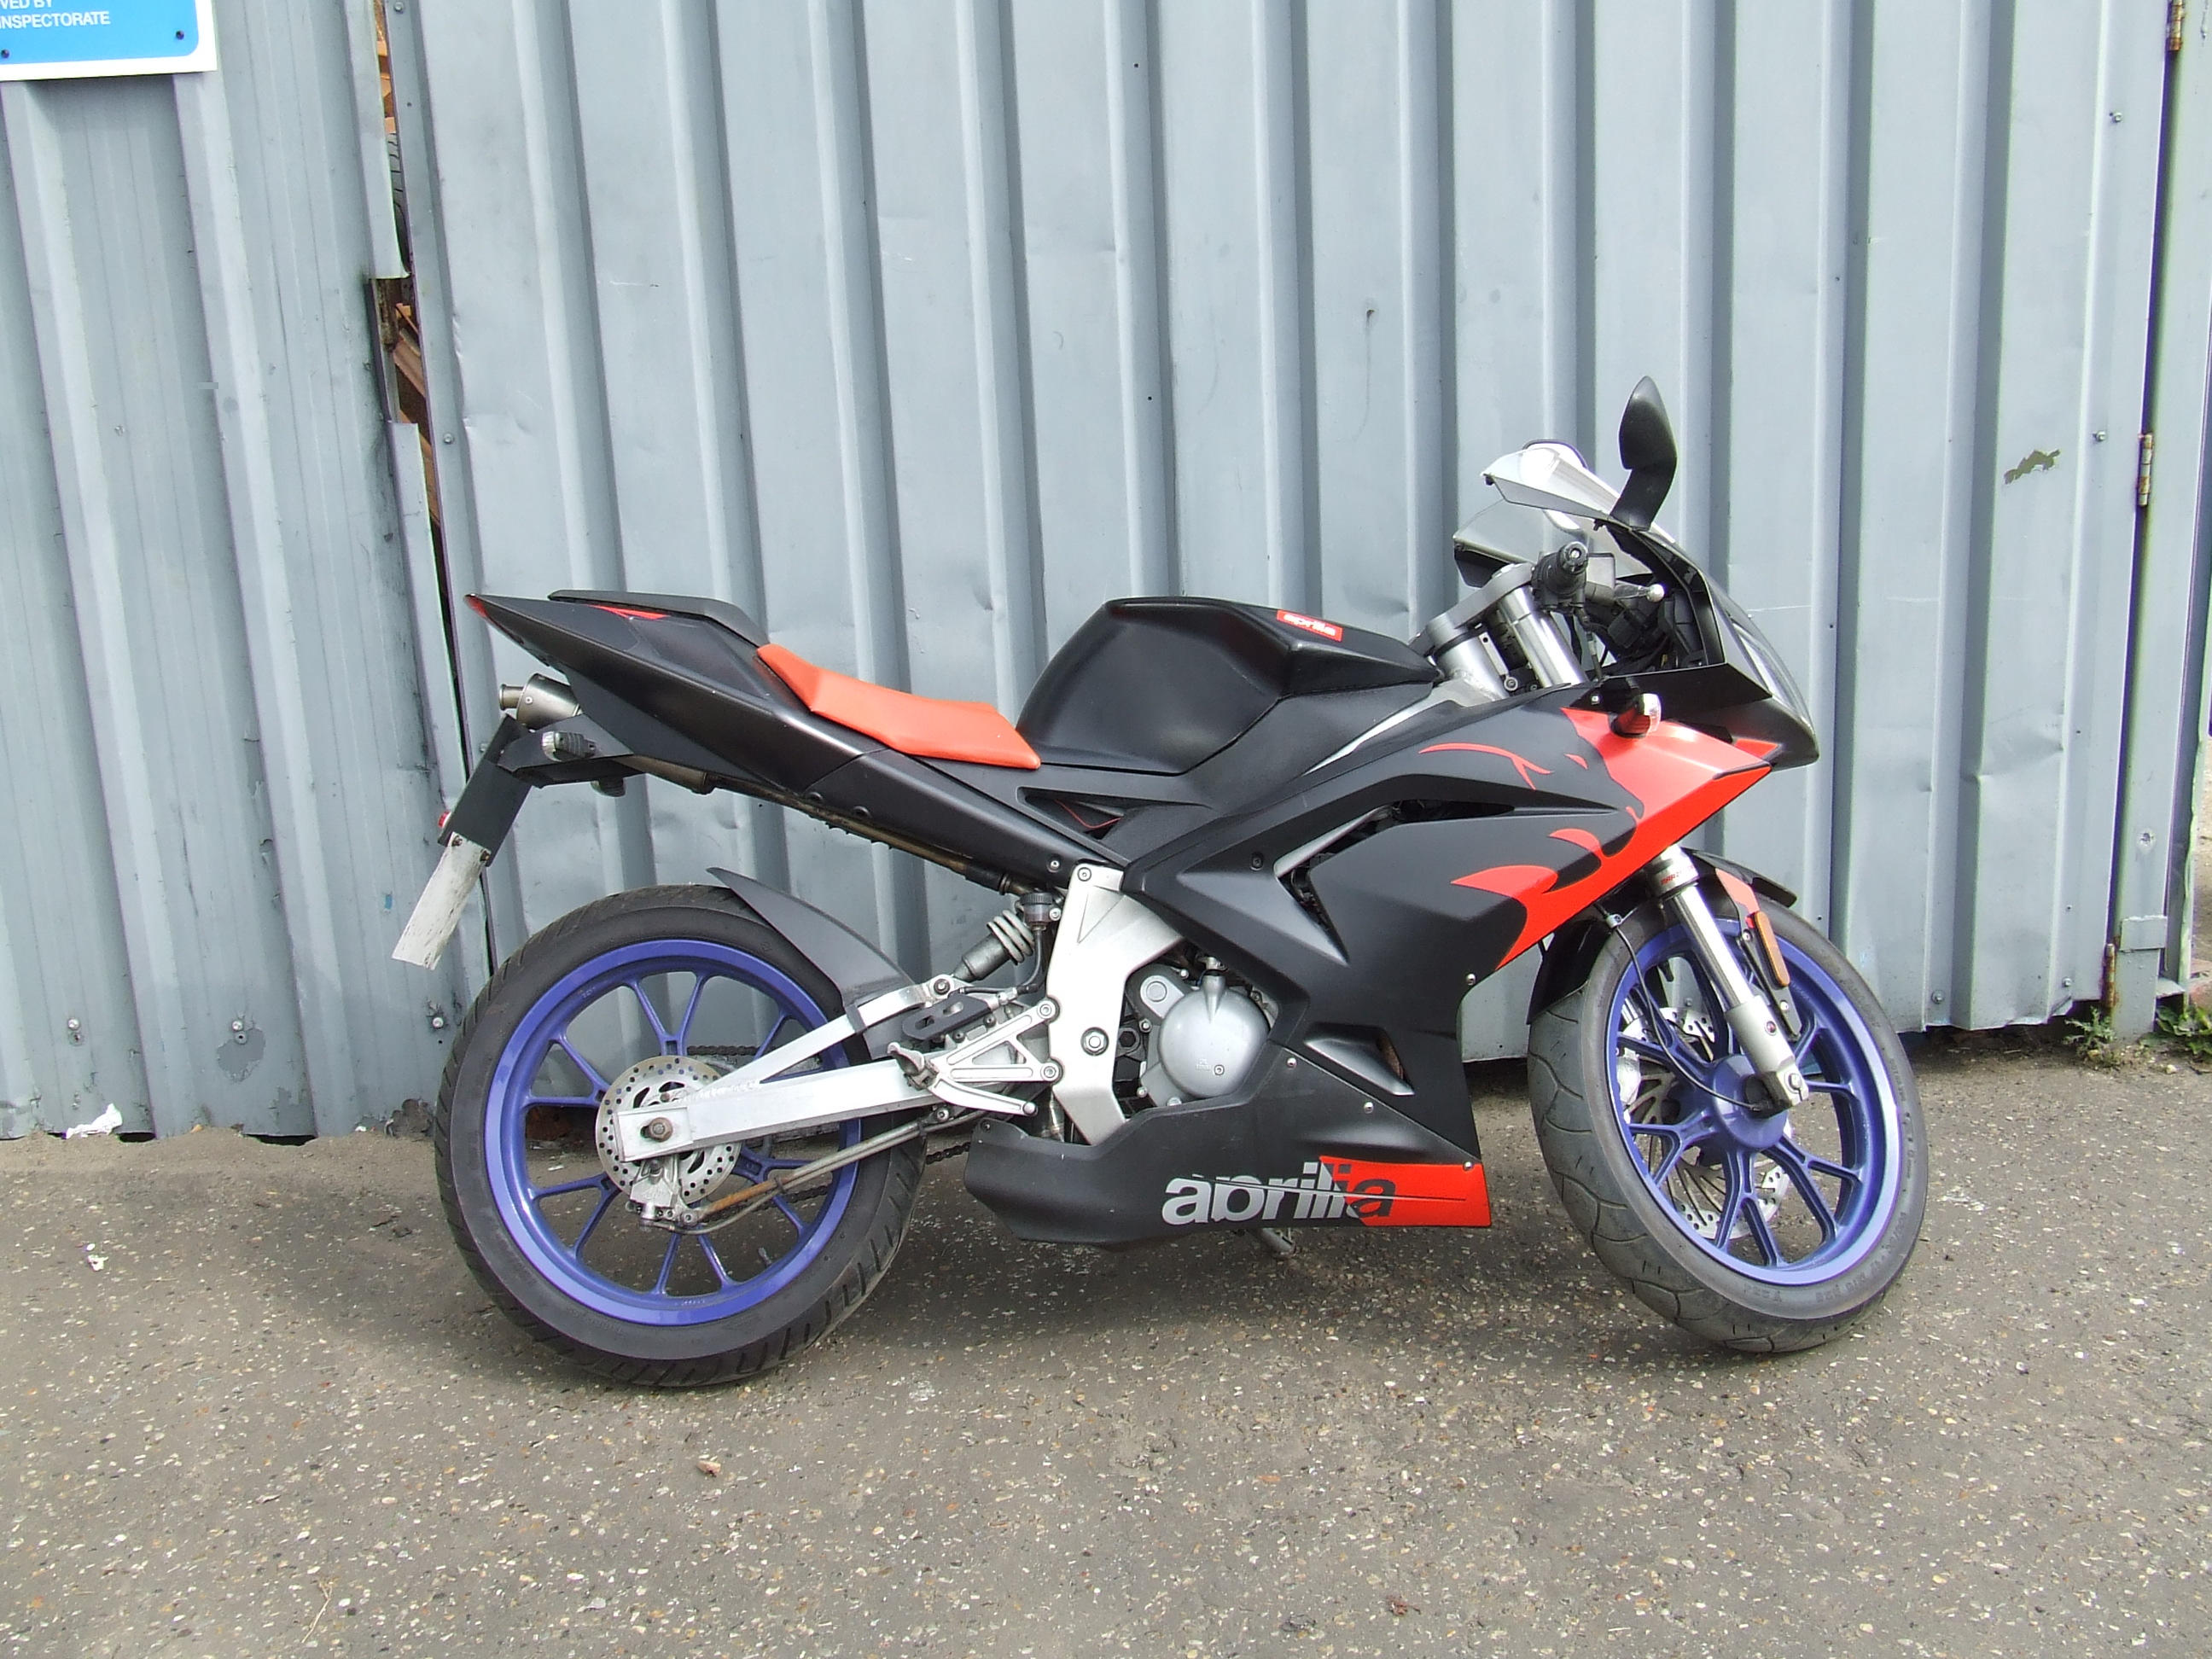 2007 aprilia rs 50 pics specs and information. Black Bedroom Furniture Sets. Home Design Ideas